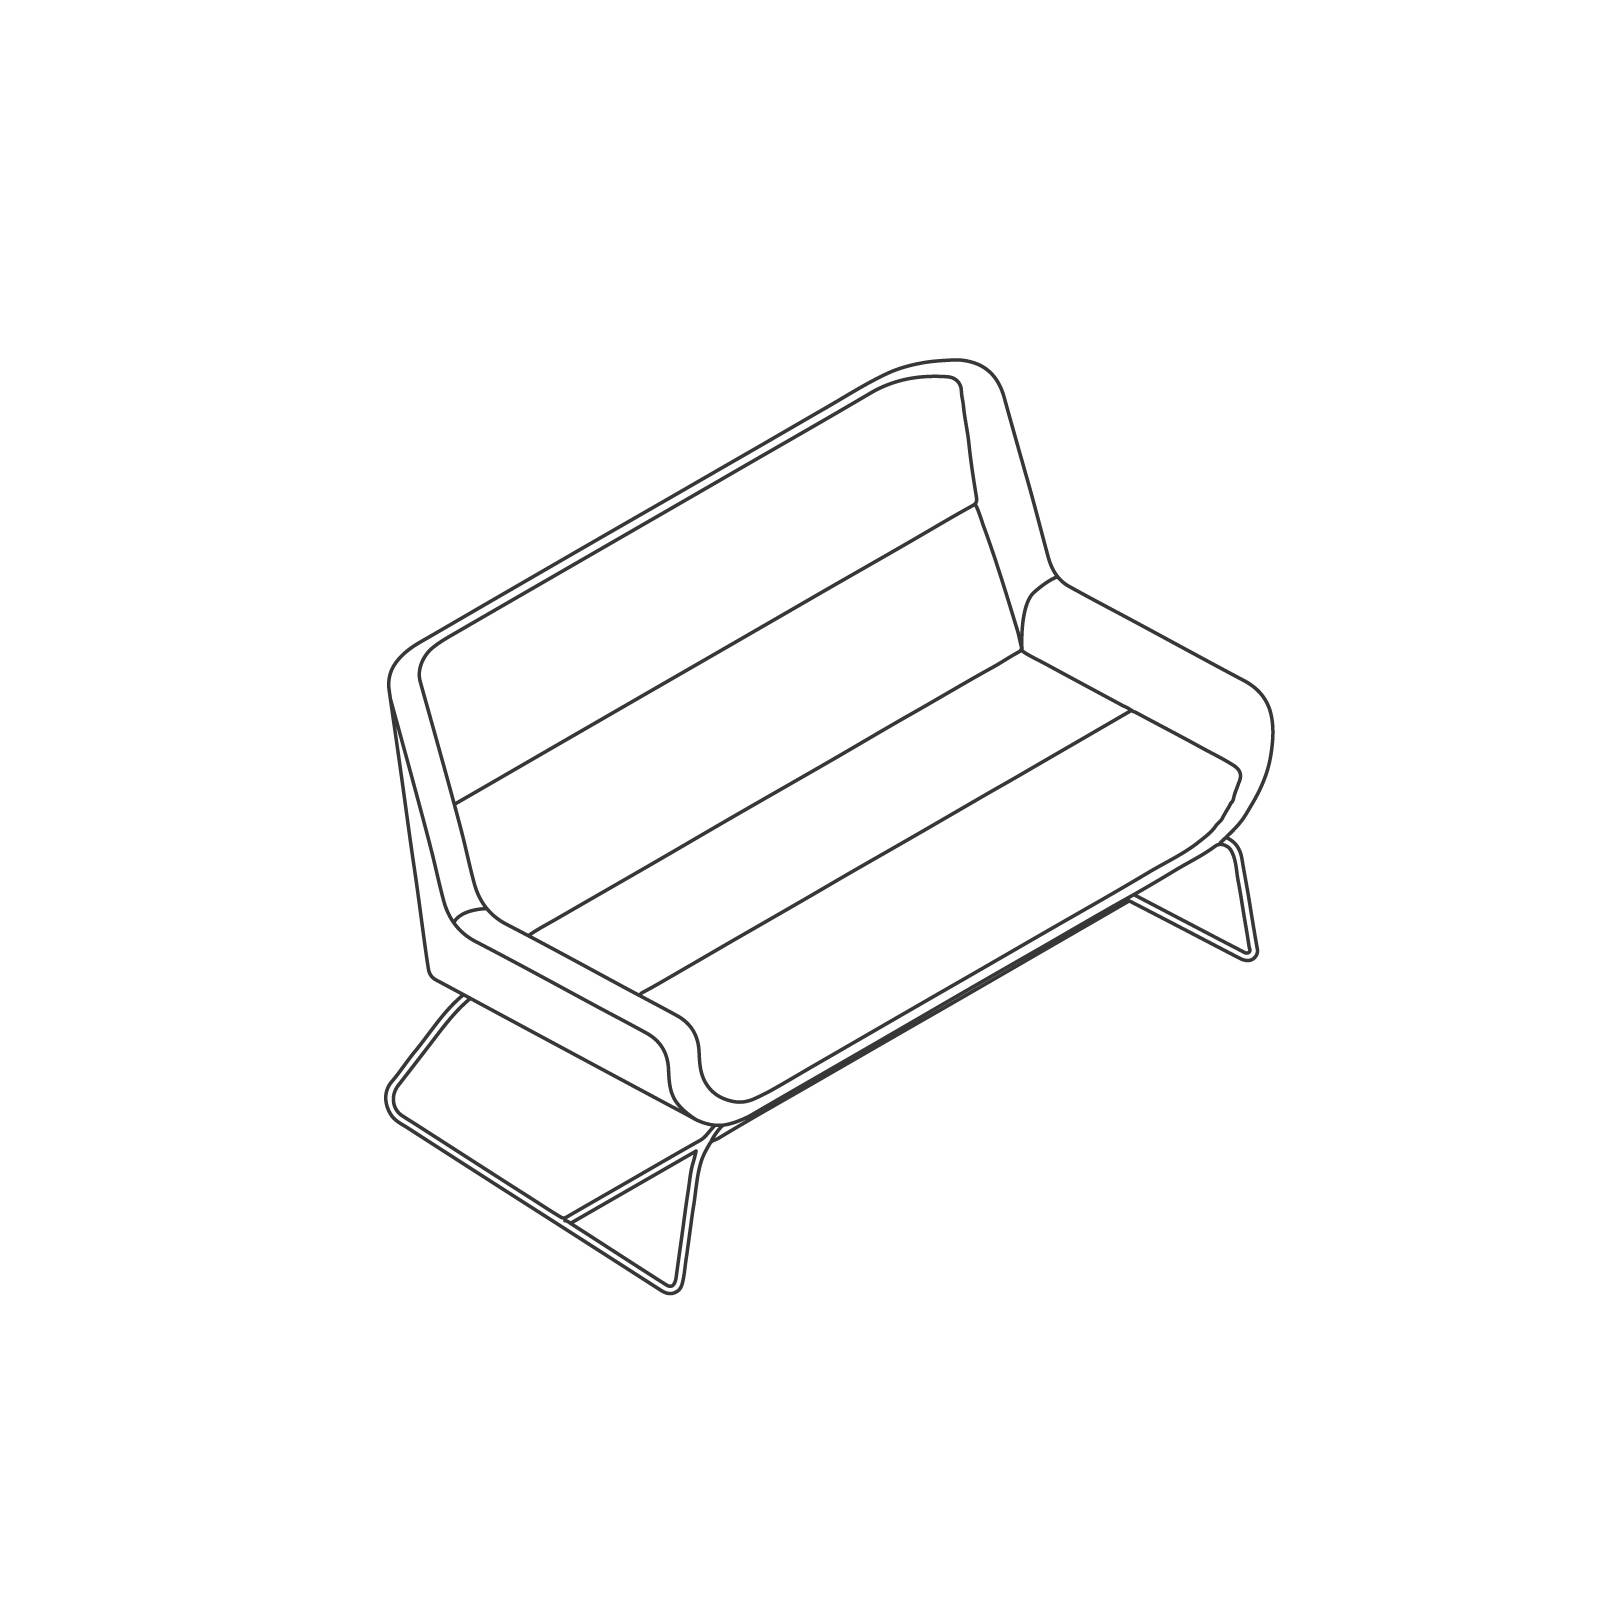 A line drawing of Hush Sofa–Low Back–2 Seat–Sled Base.